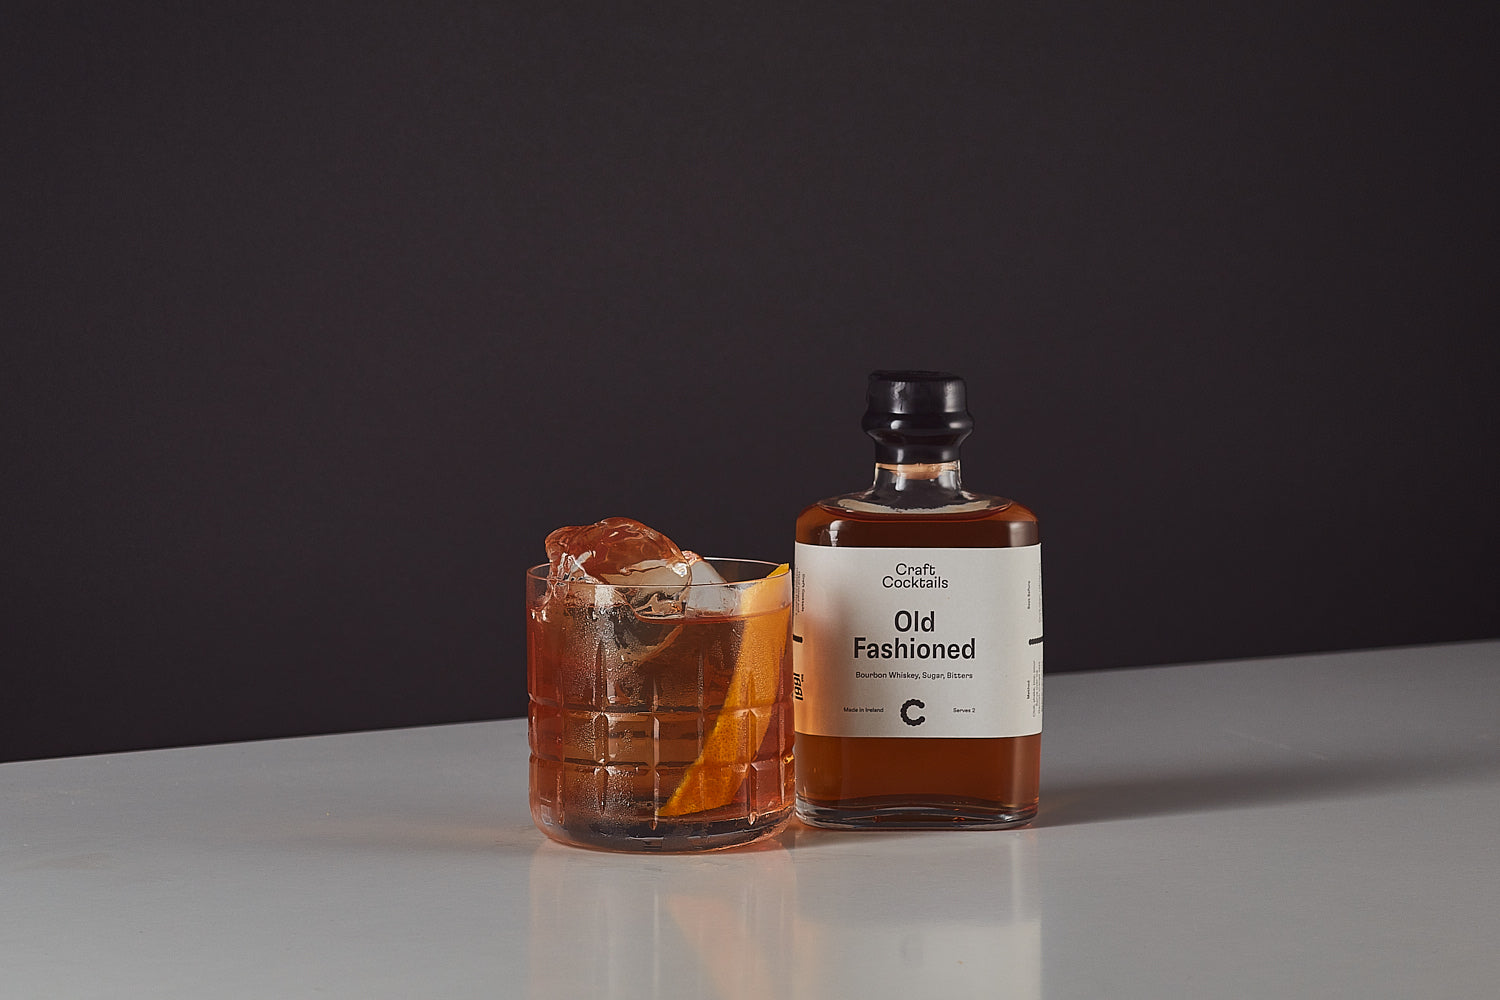 Old Fashioned (Serves 2)